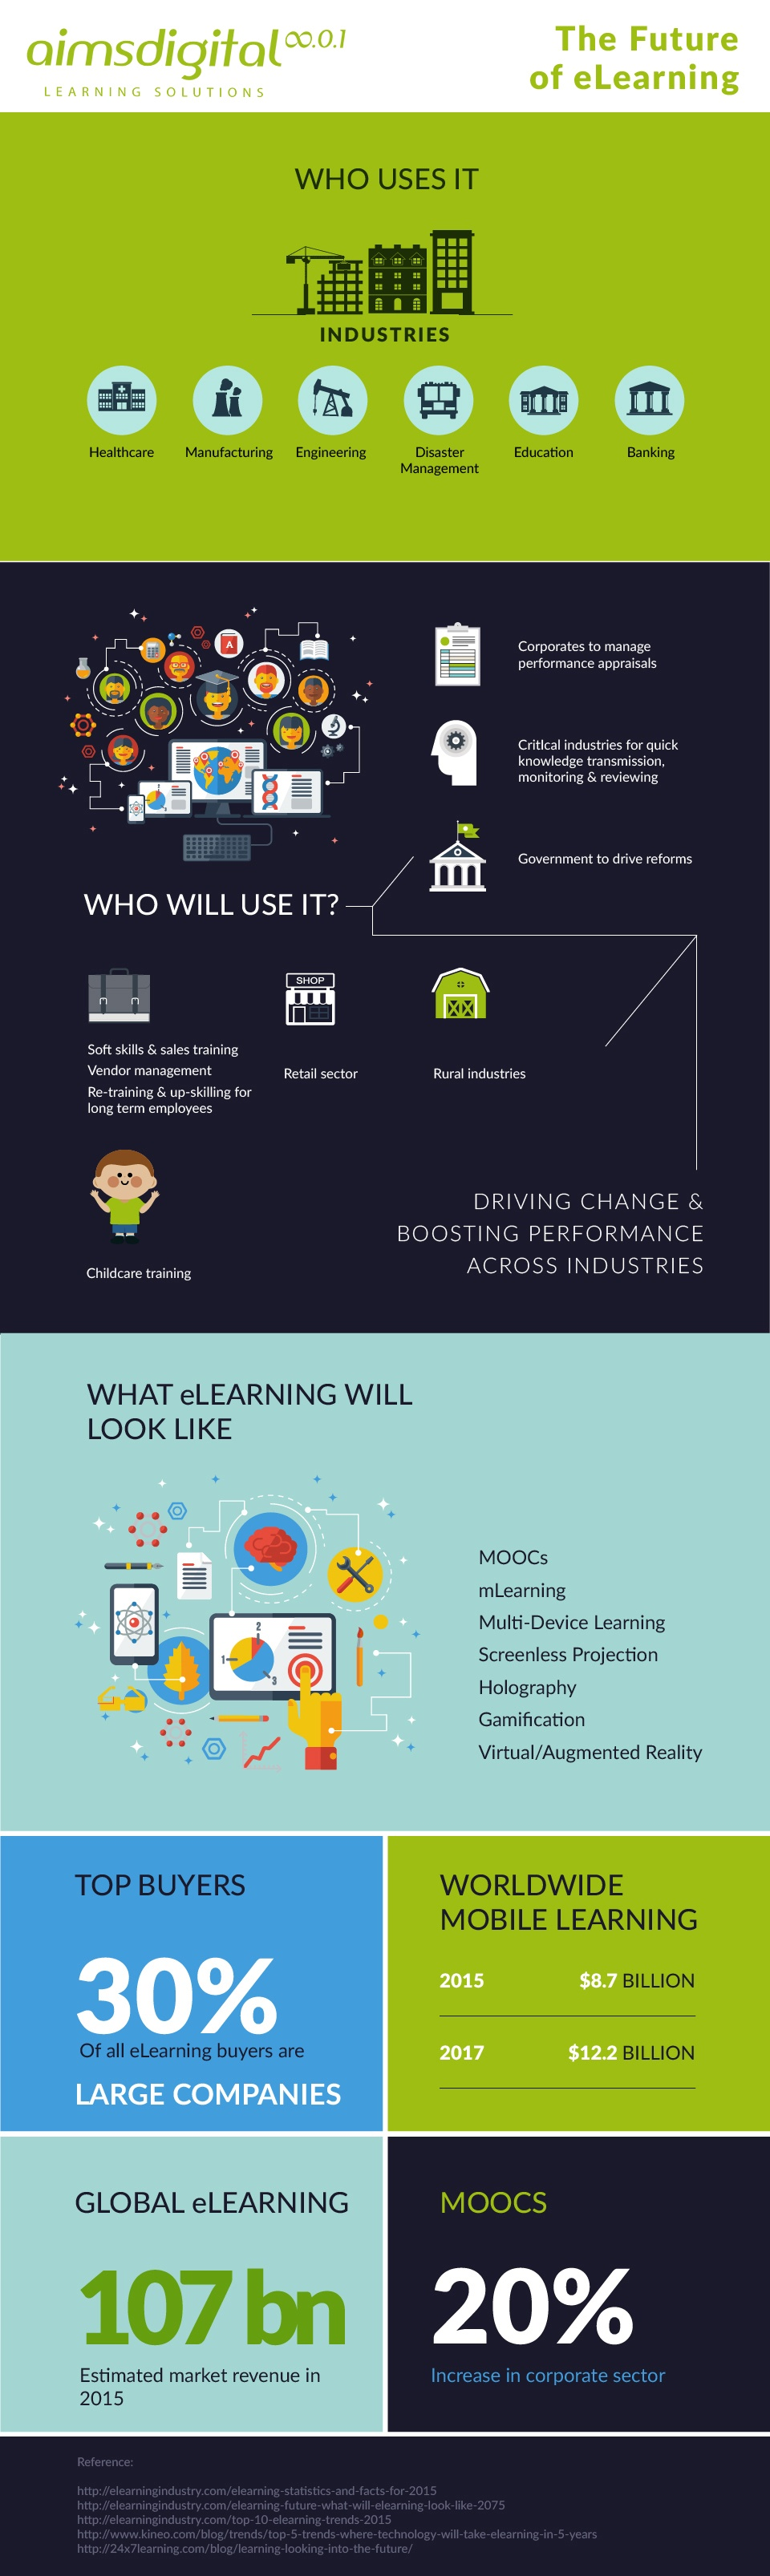 The Future of eLearning Infographic